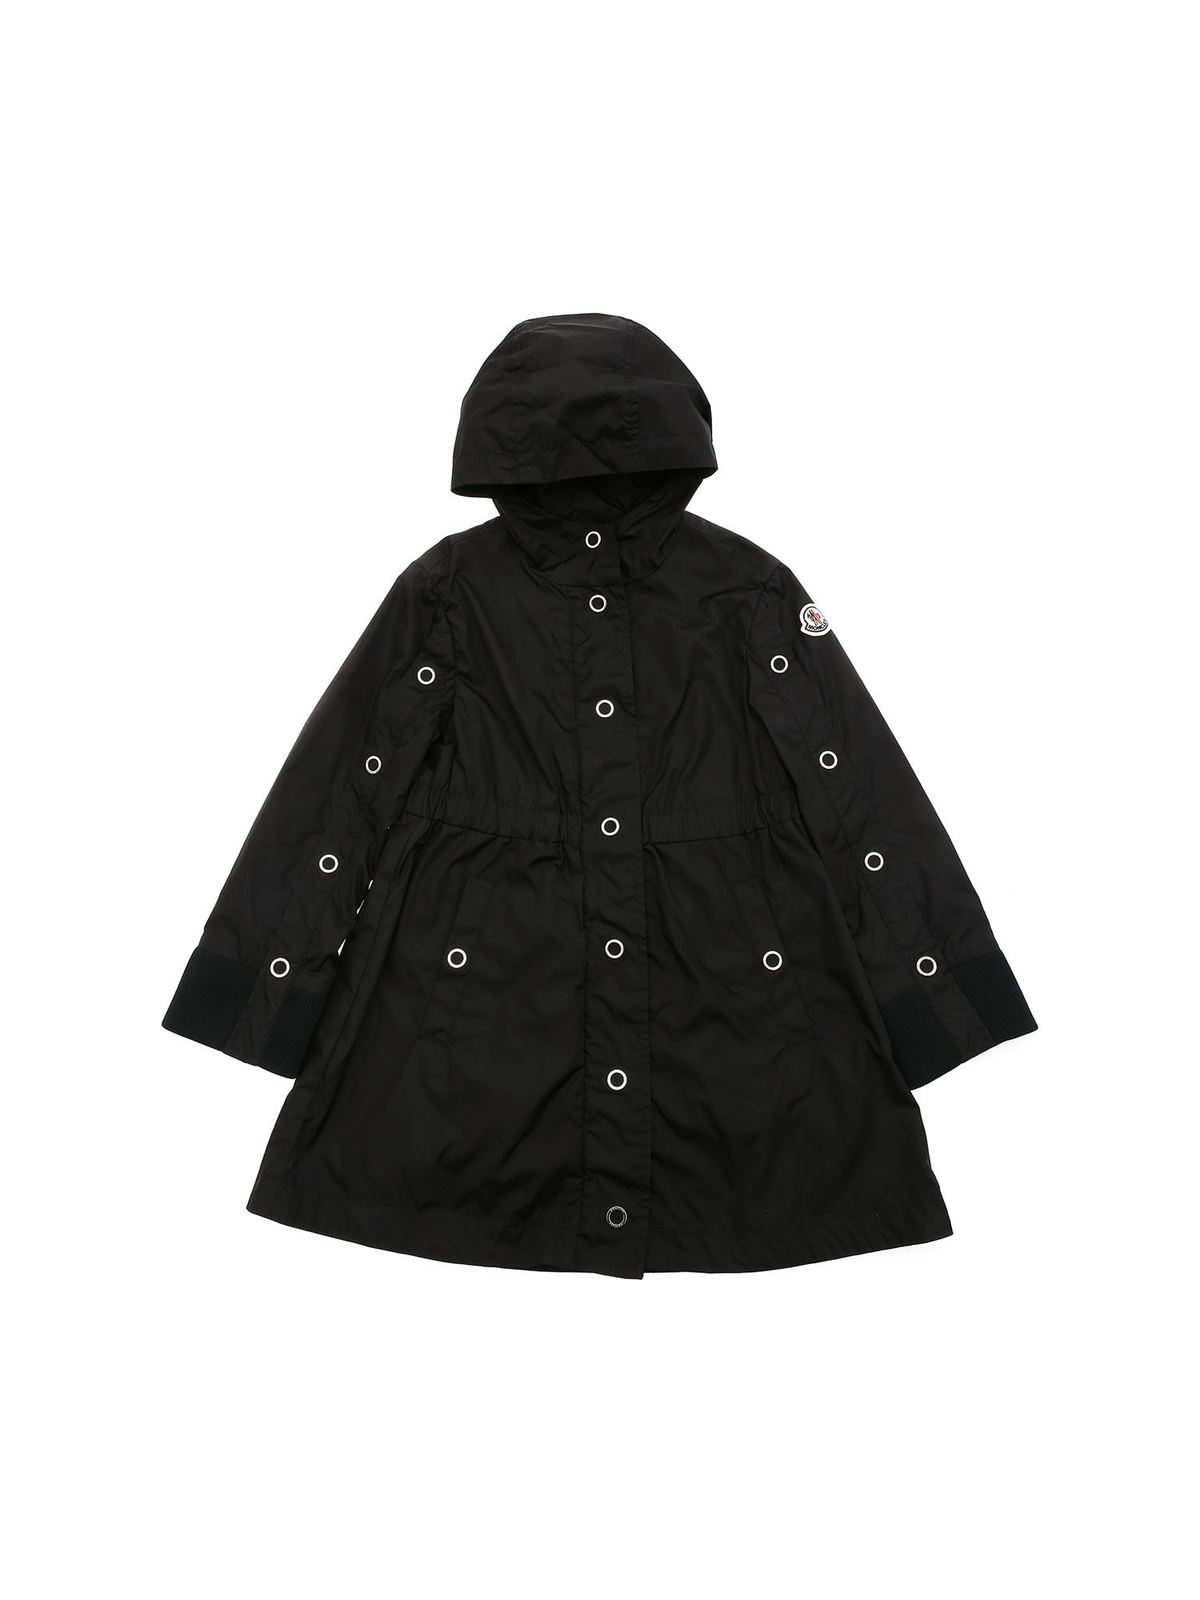 MONCLER JR BLEUET HOODIE JACKET IN BLACK